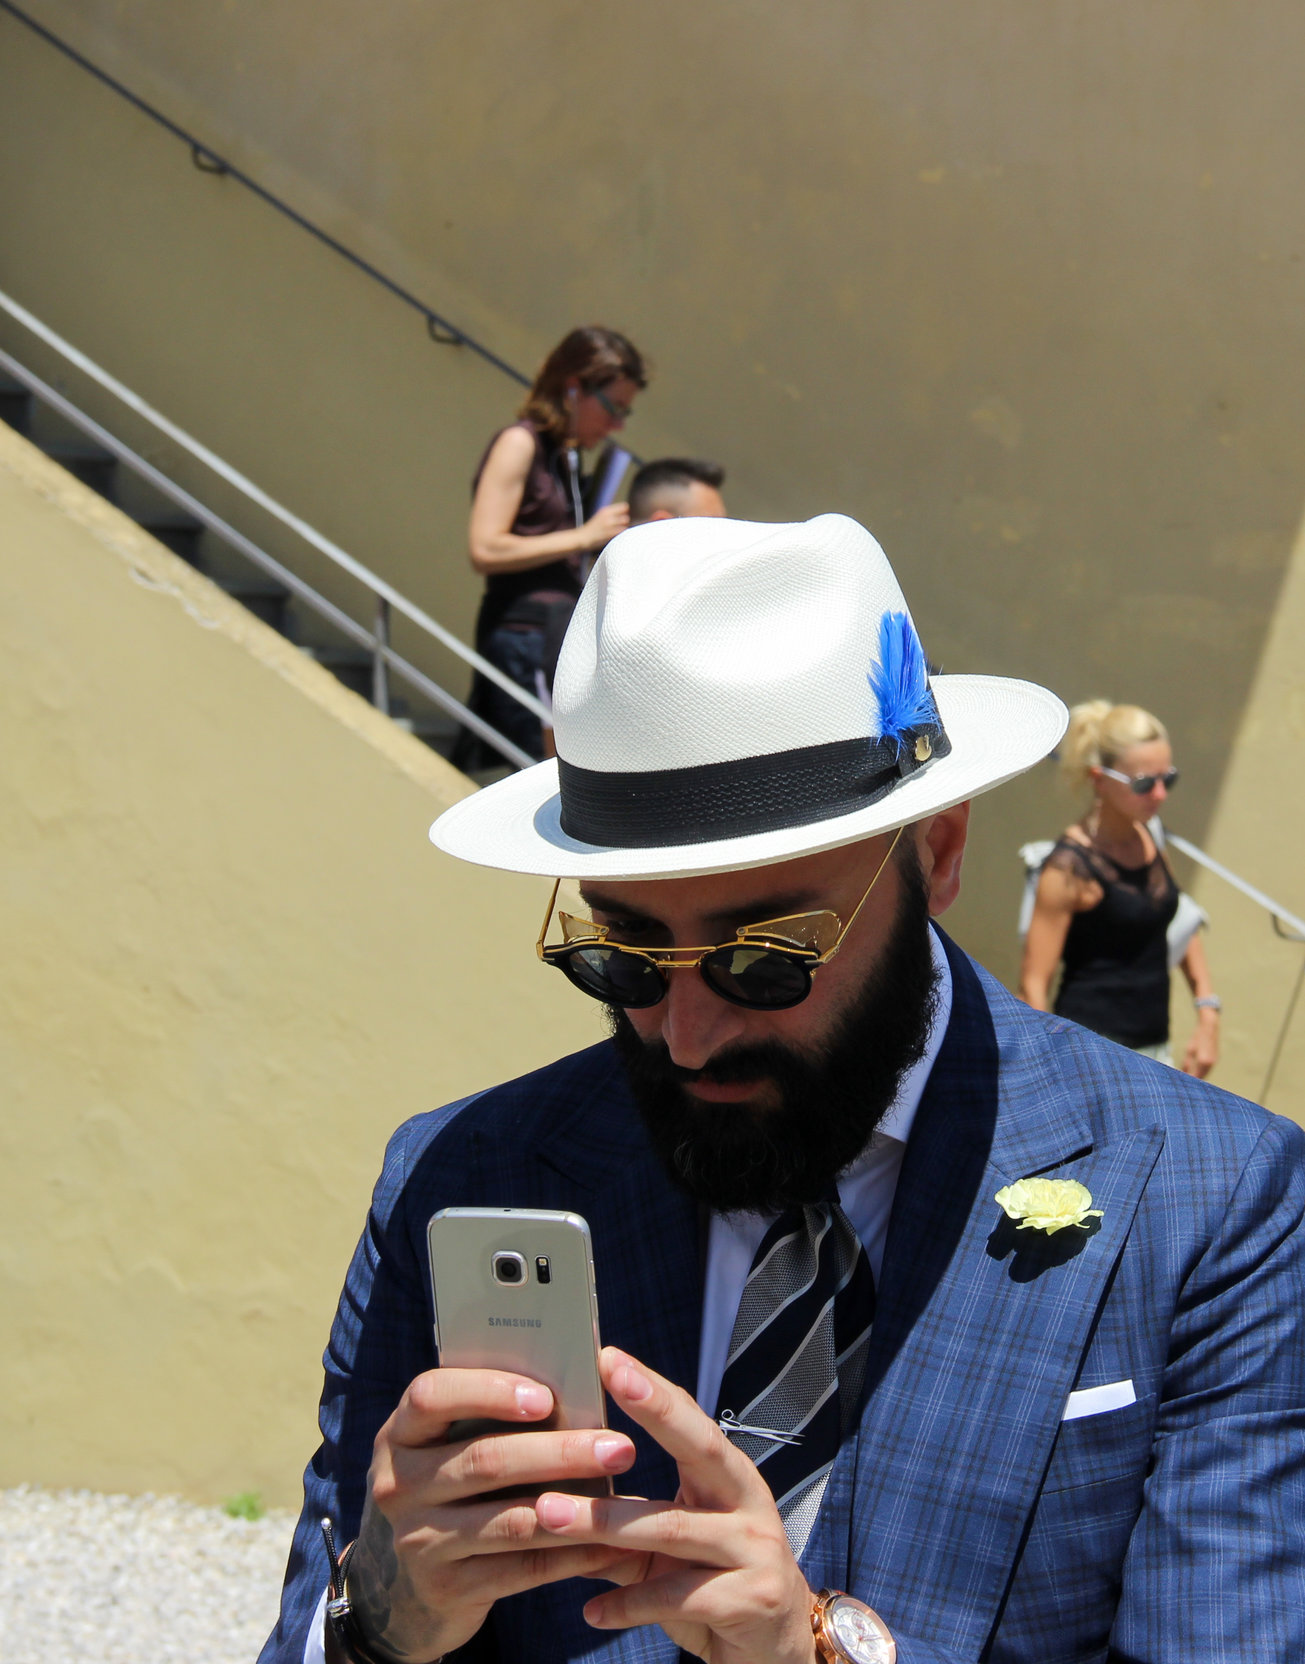 Pitti uomo 90 - Hats by LONG STORY SHORT